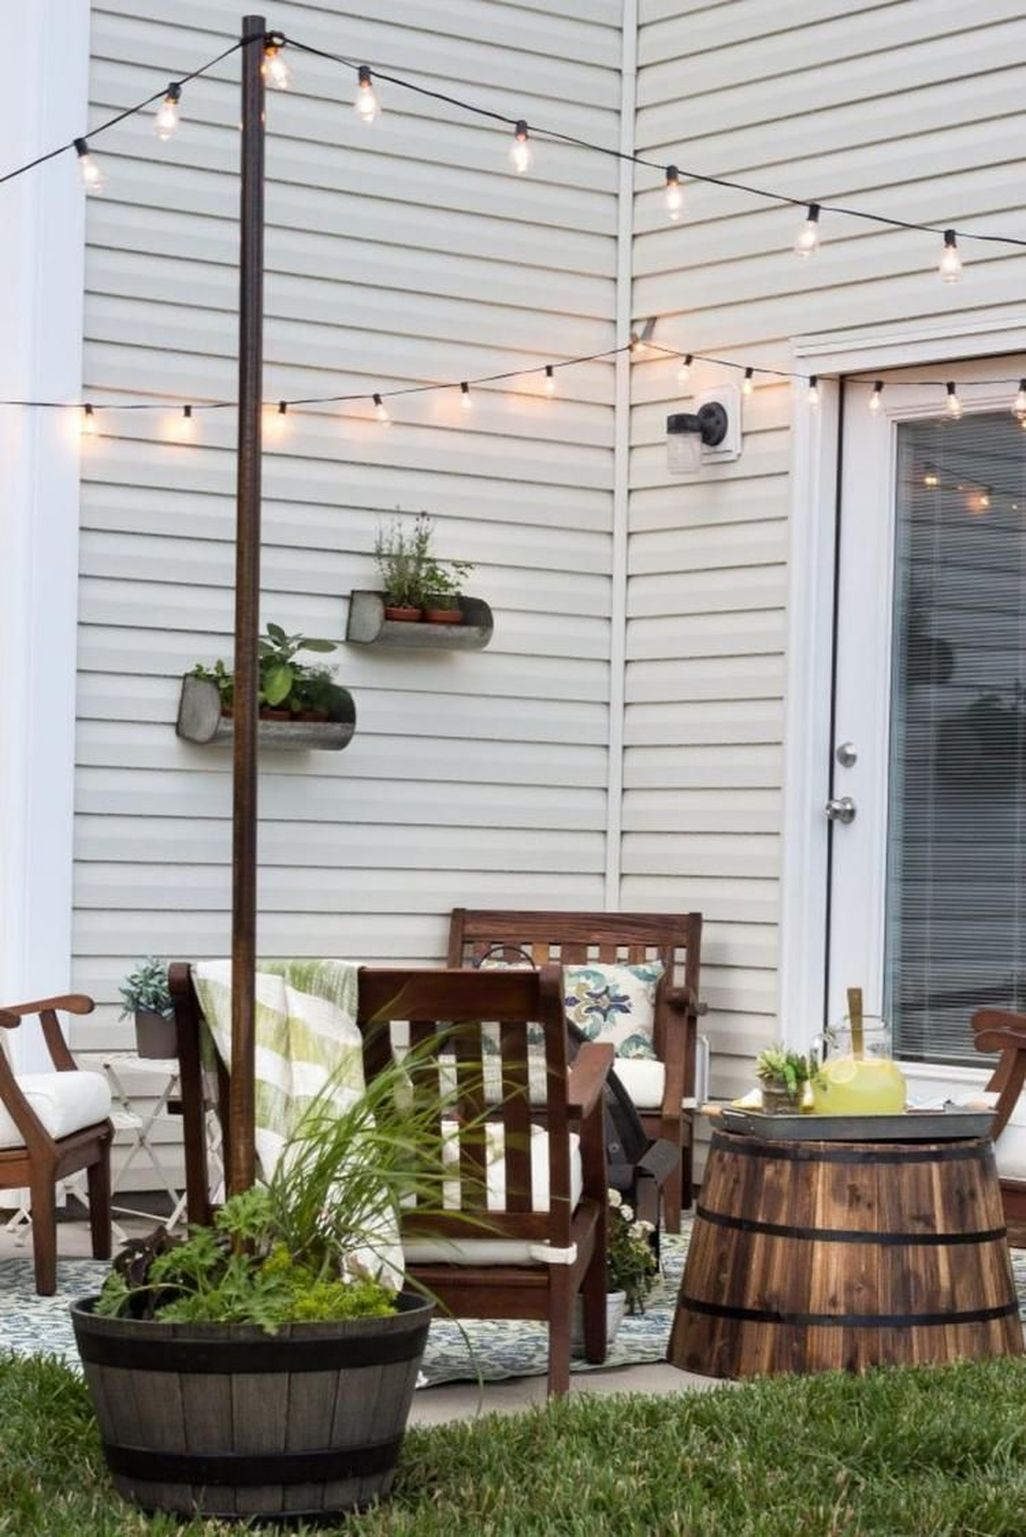 42 Creative Small Patio Design Ideas Homishome